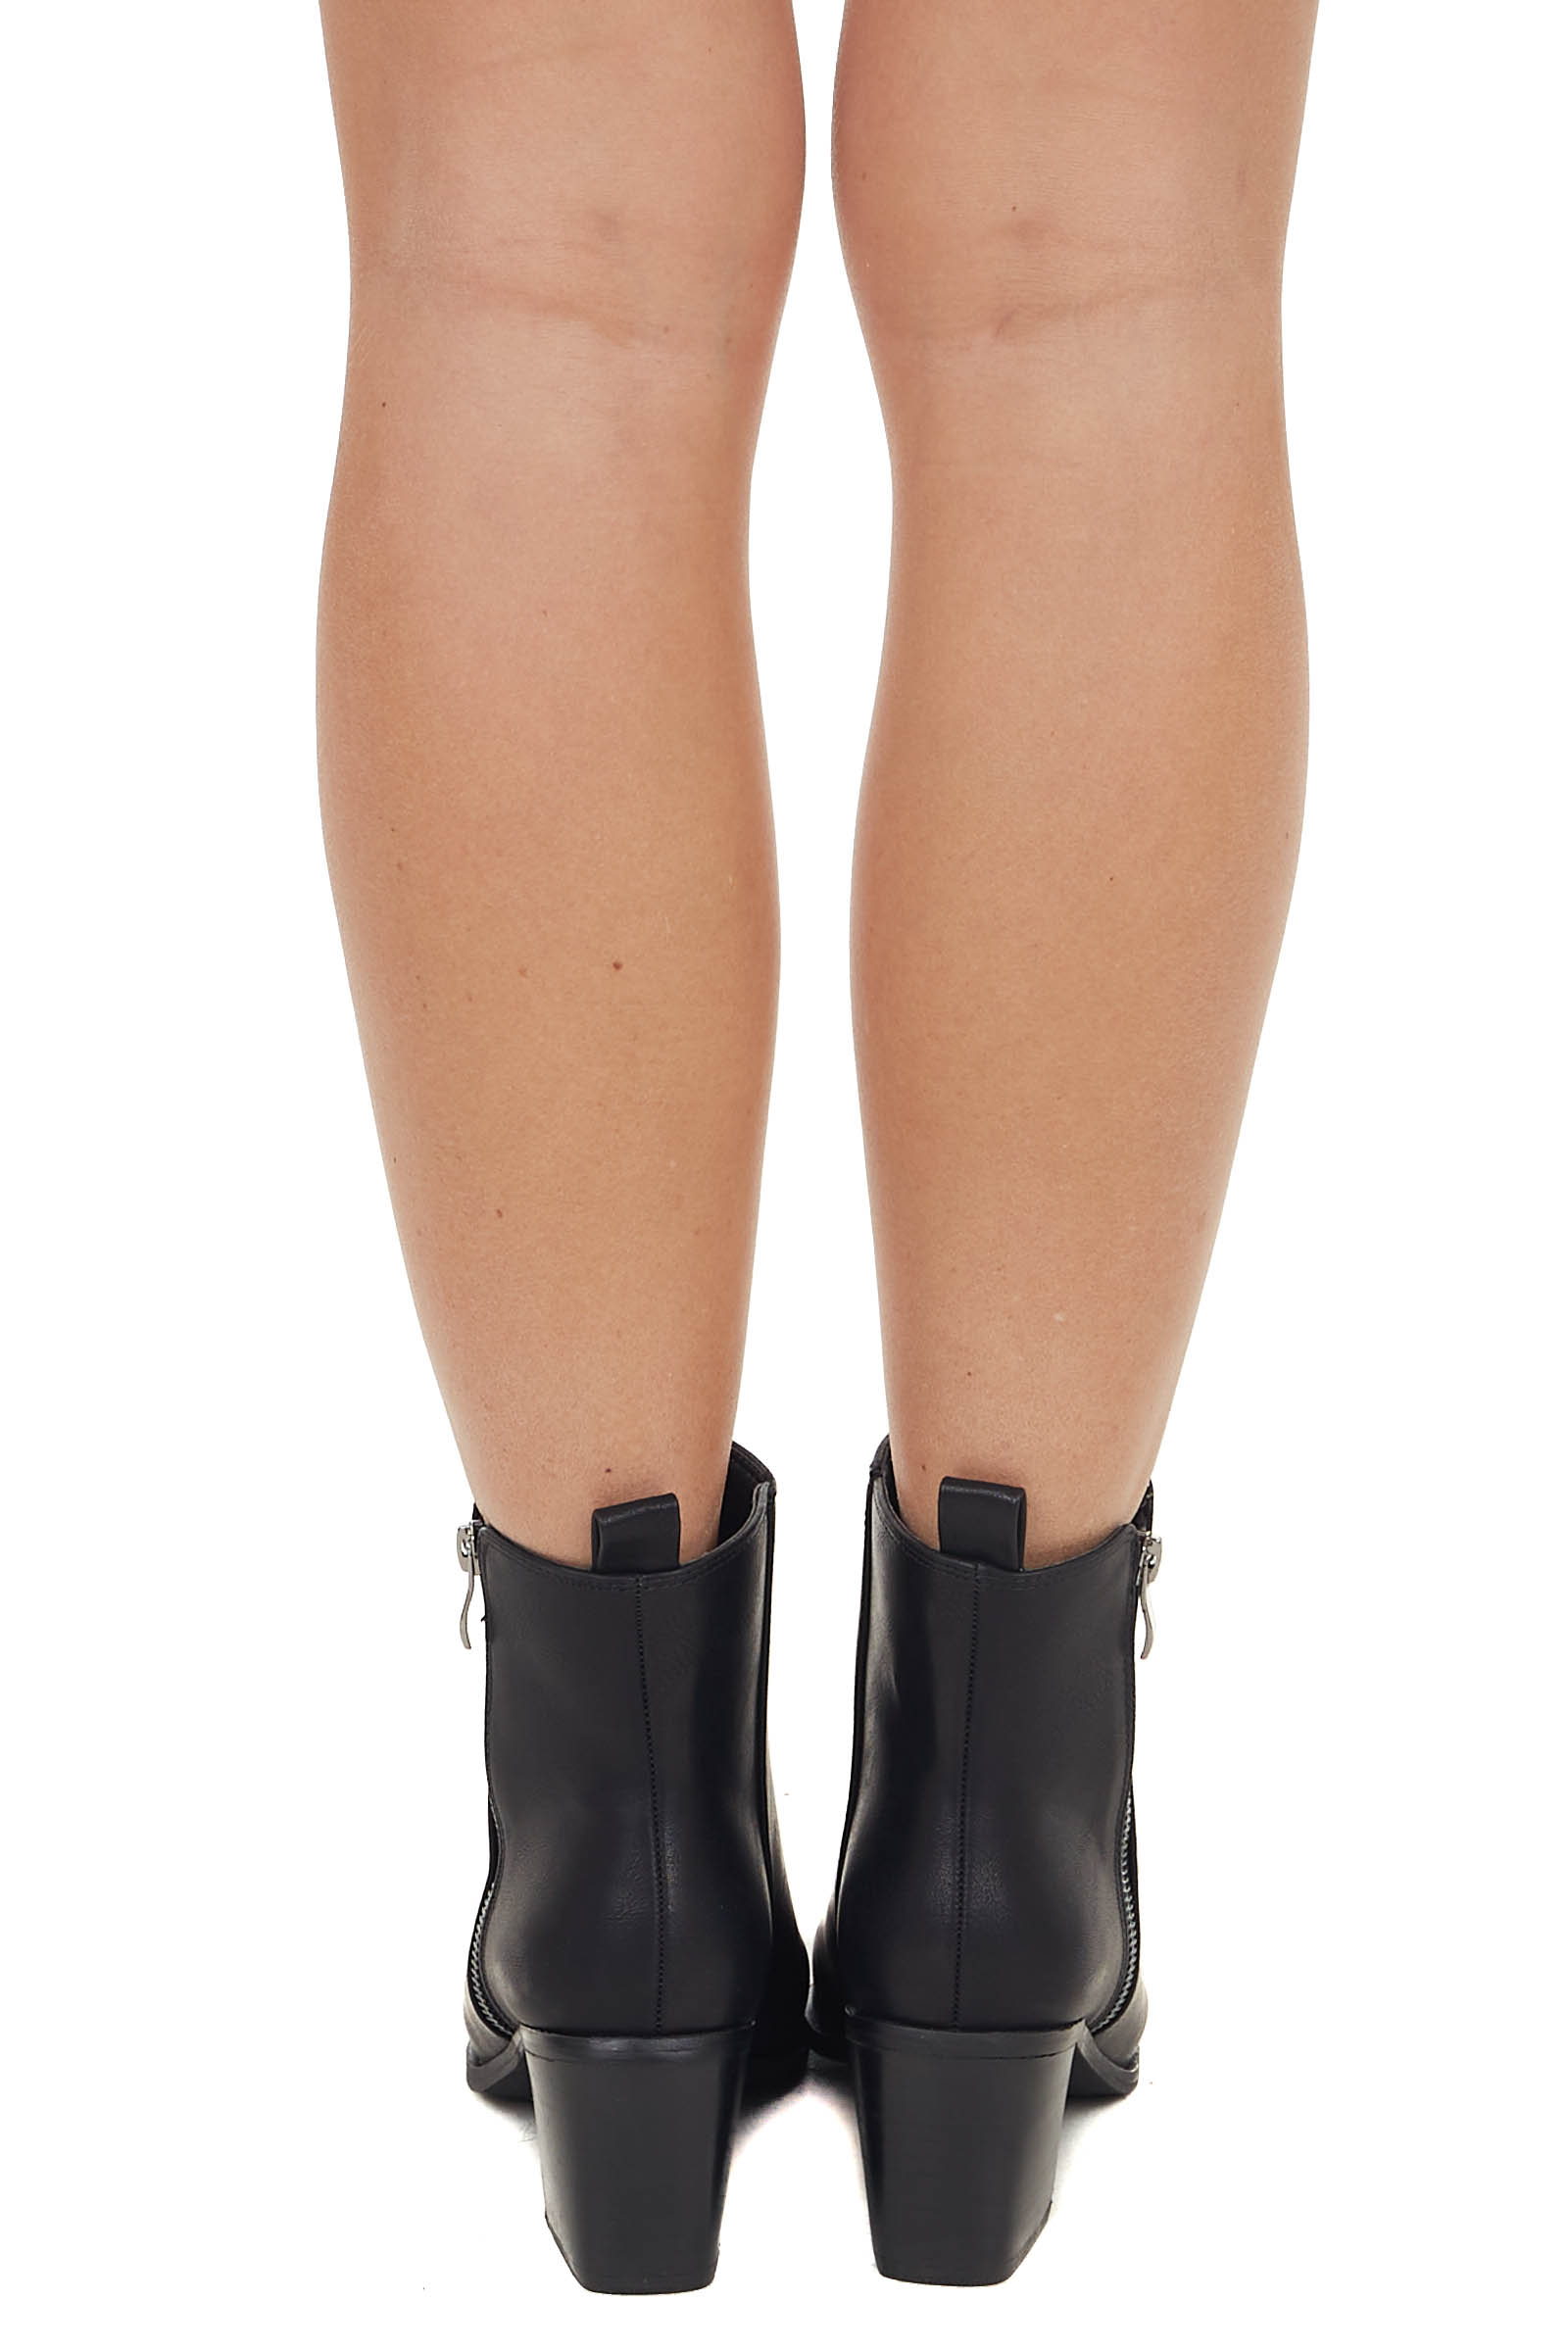 Black High Top Booties with Block Heel and Pointed Toe